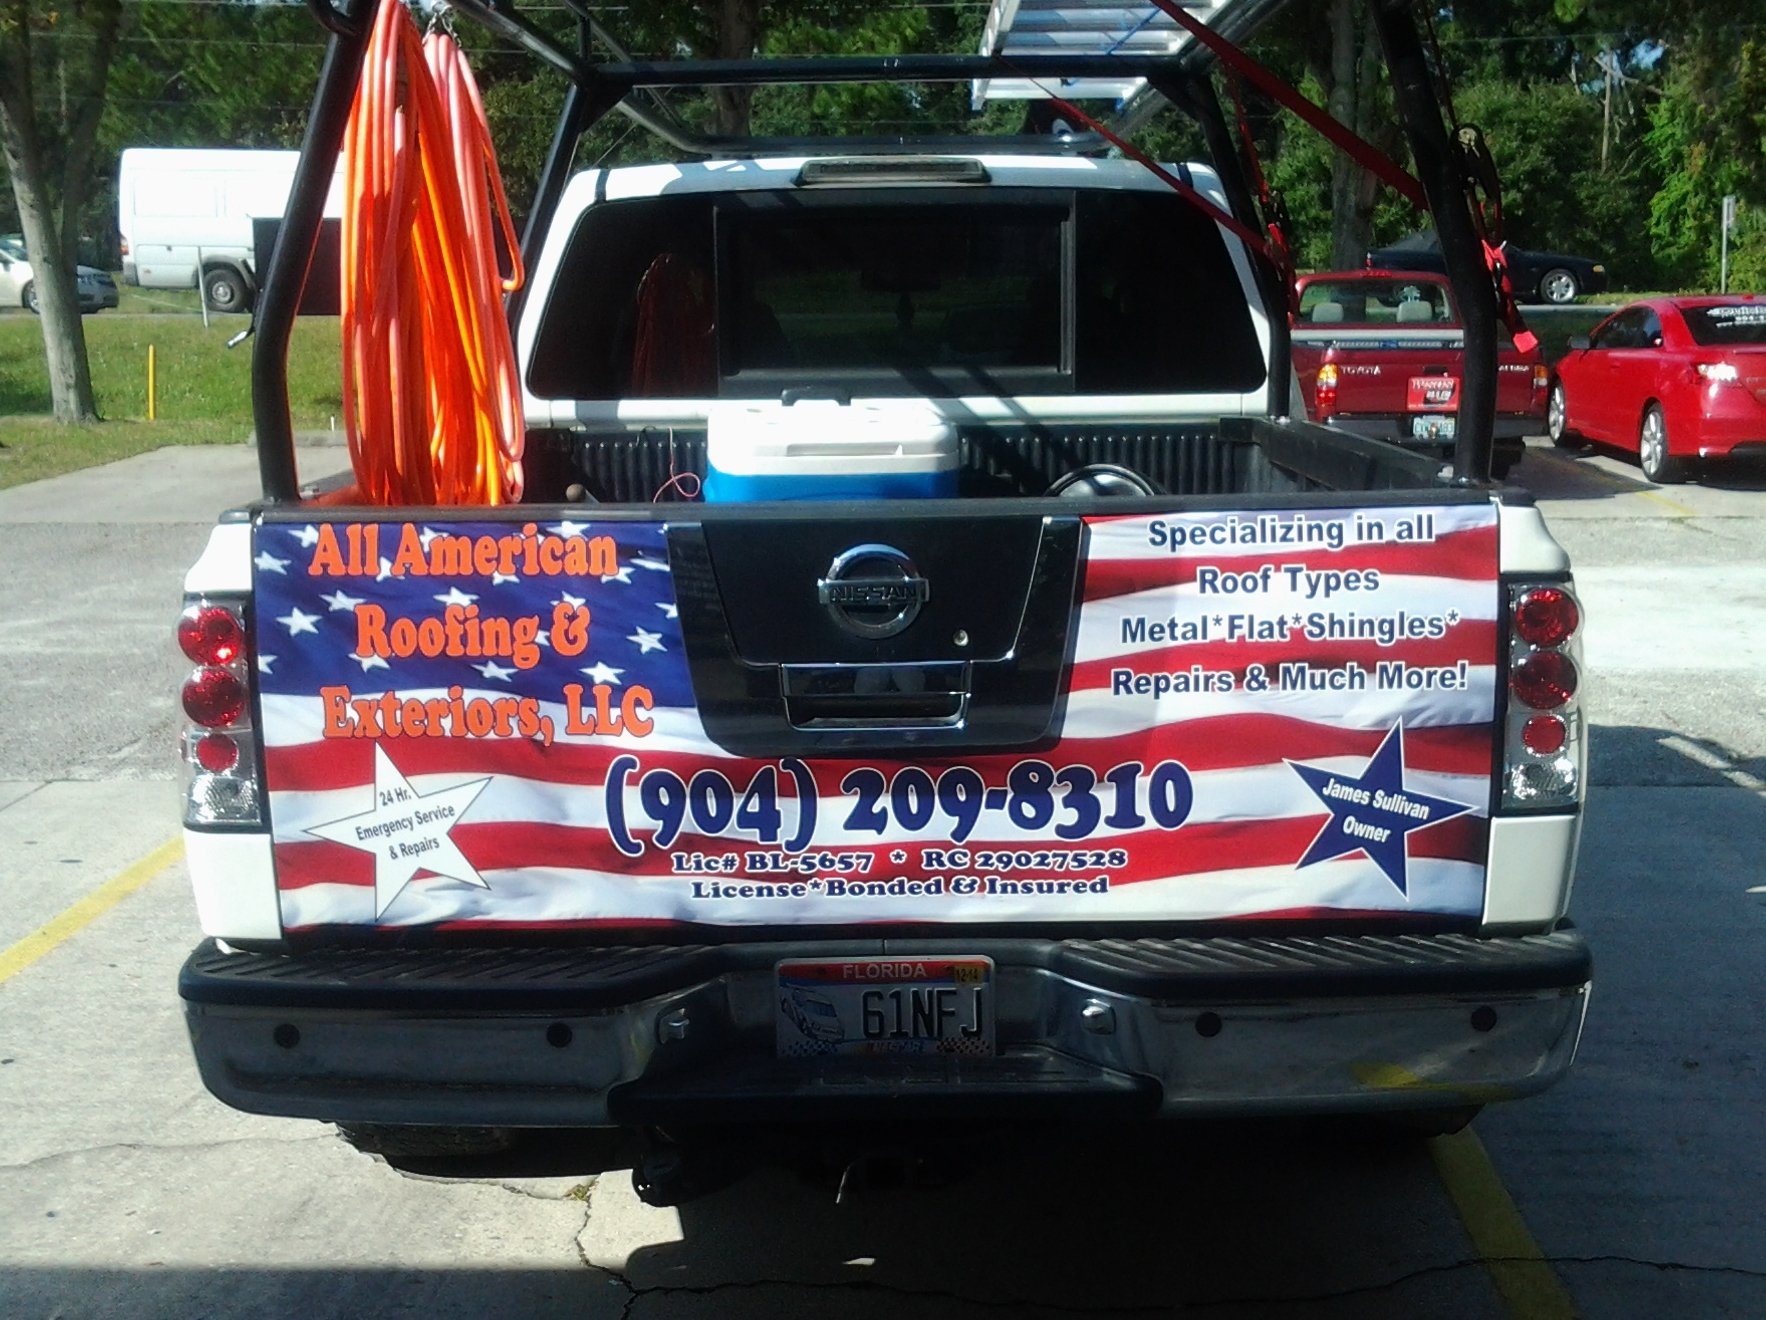 all american roofing & exteriors tailgate wrap